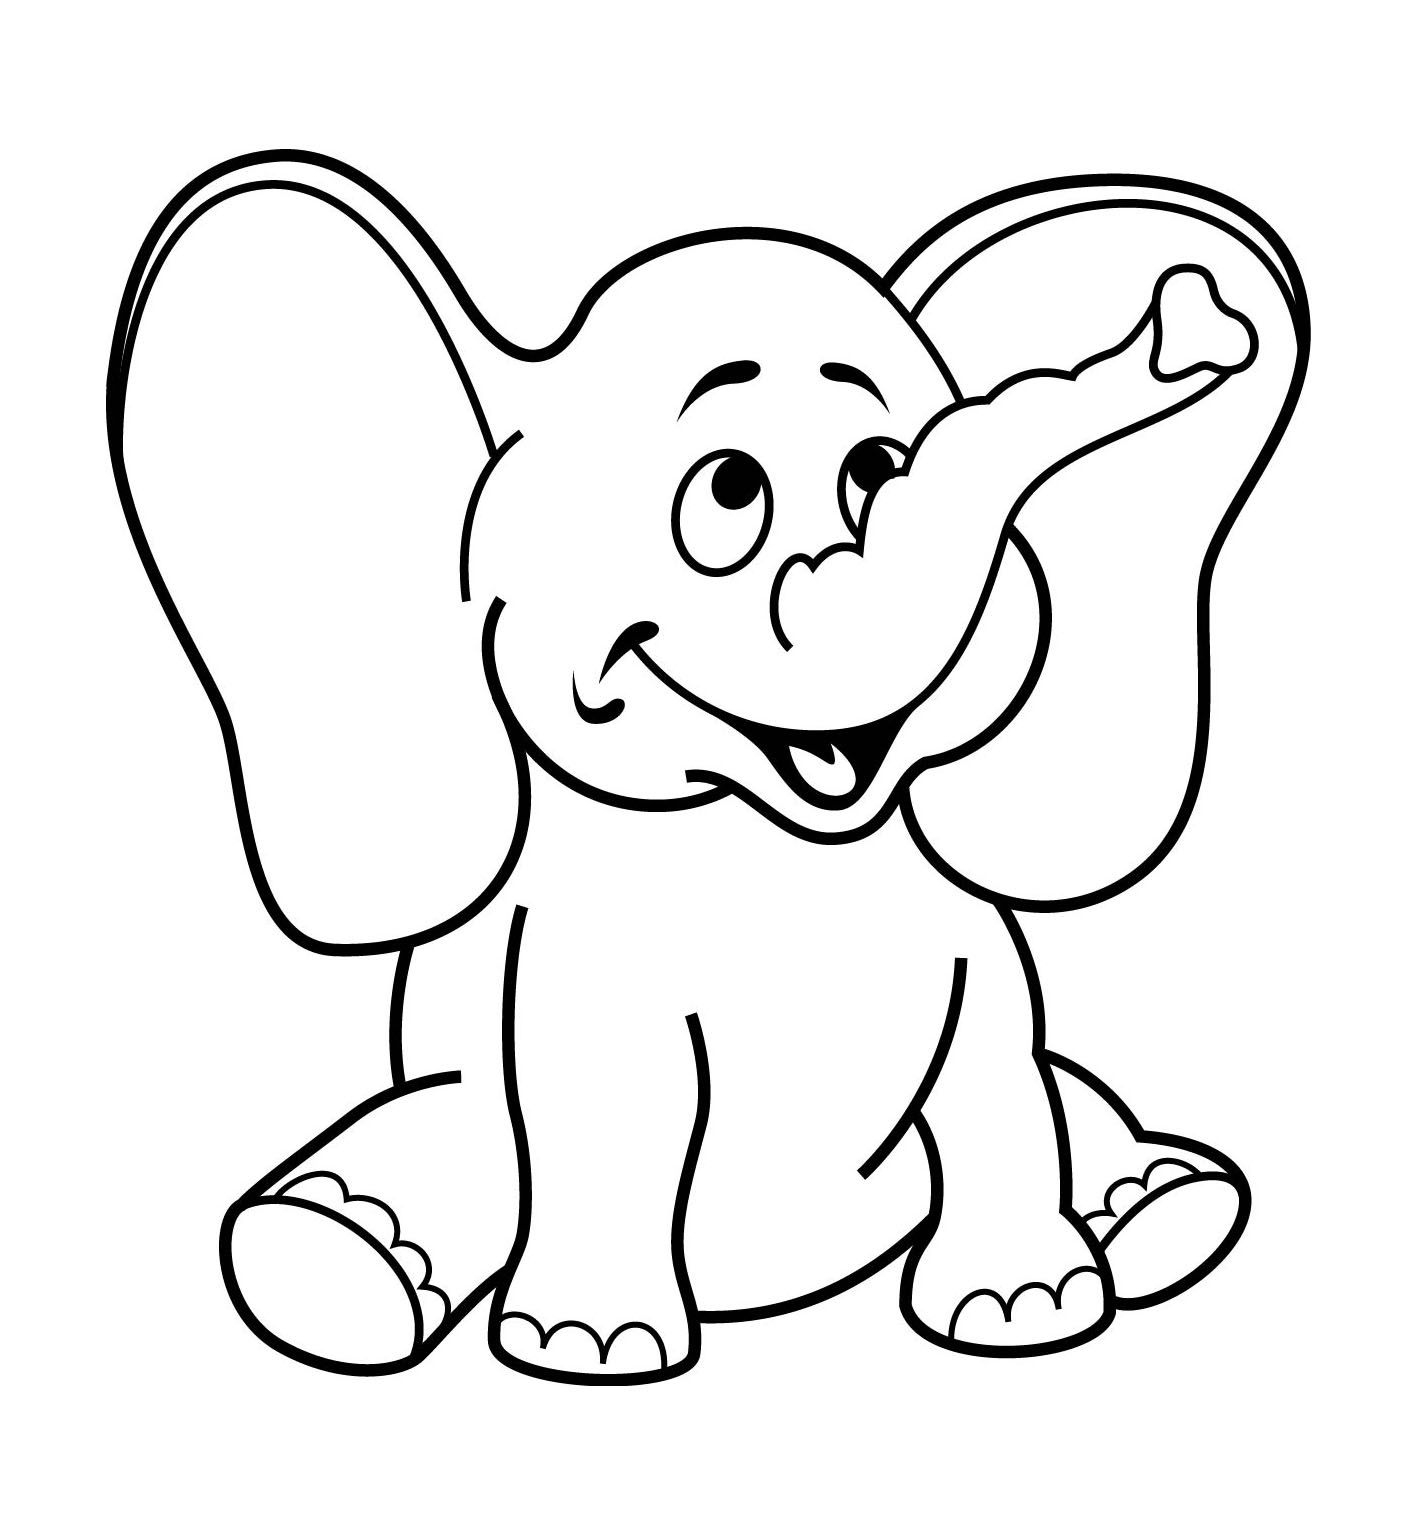 Image Result For Printable 2 Year Old Activities | Worksheets - Free Printable Coloring Pages For 2 Year Olds